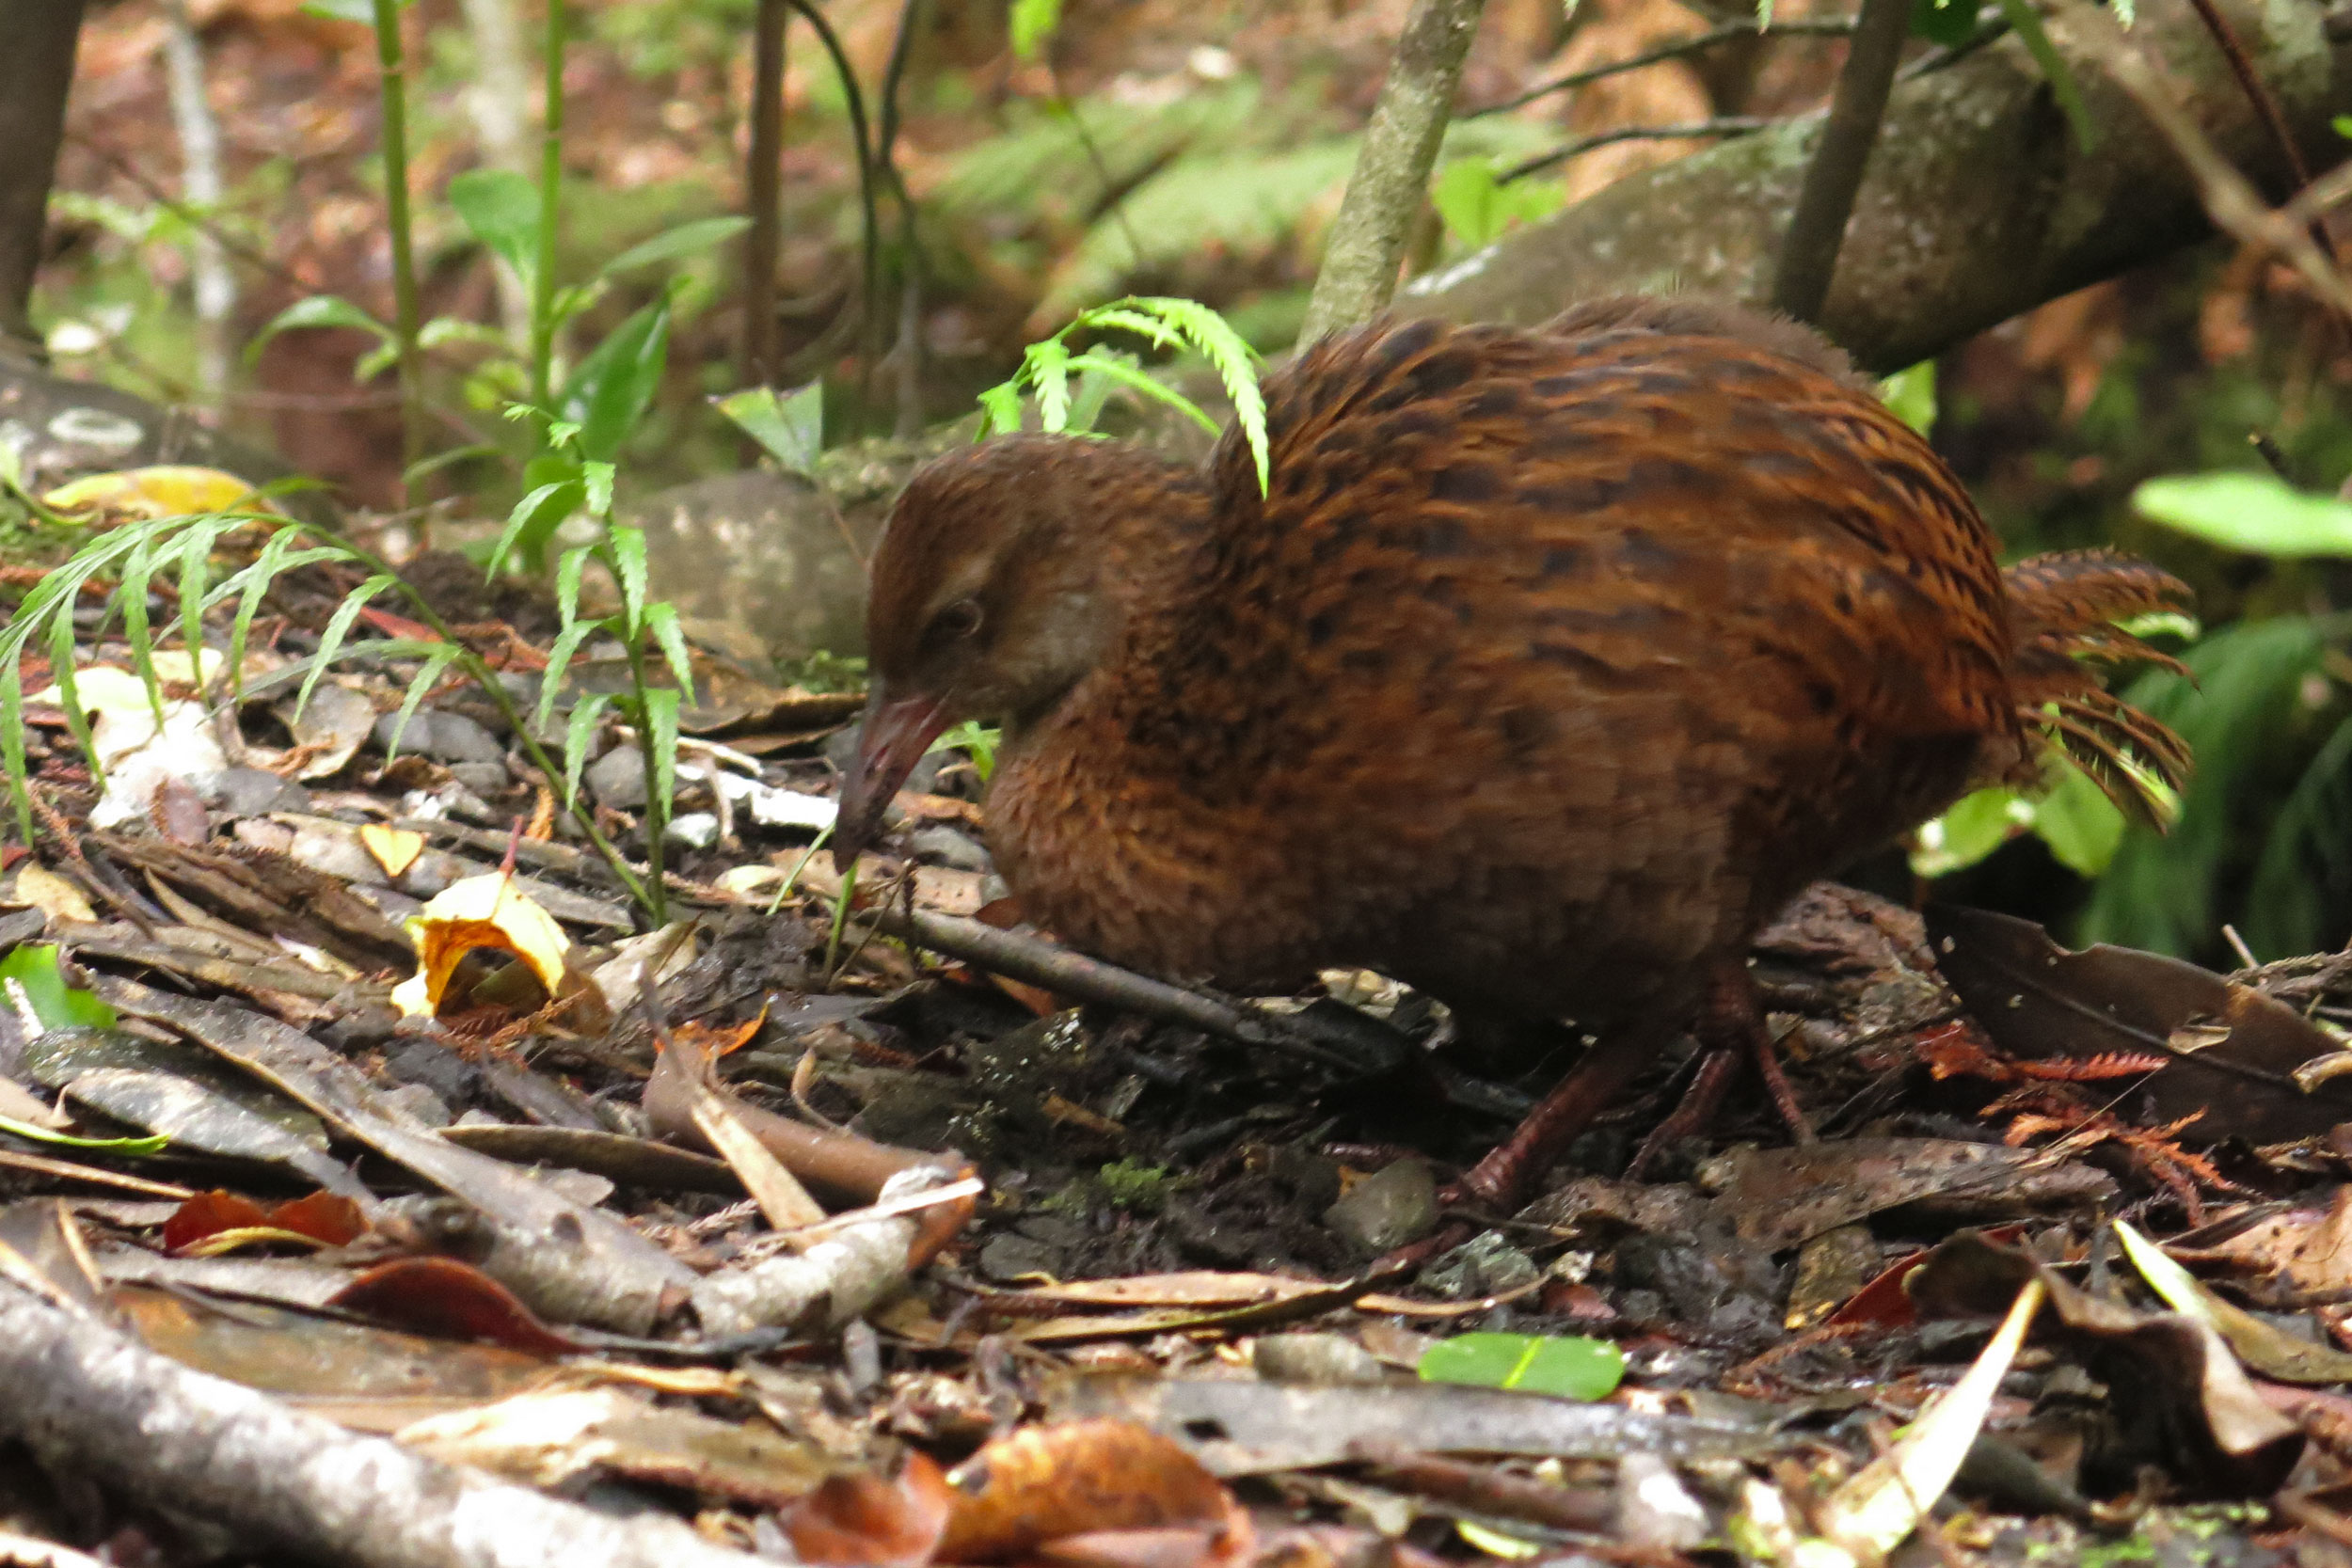 A small brown bird scratching among leaves on forest floor, Ulva Island, New Zealand